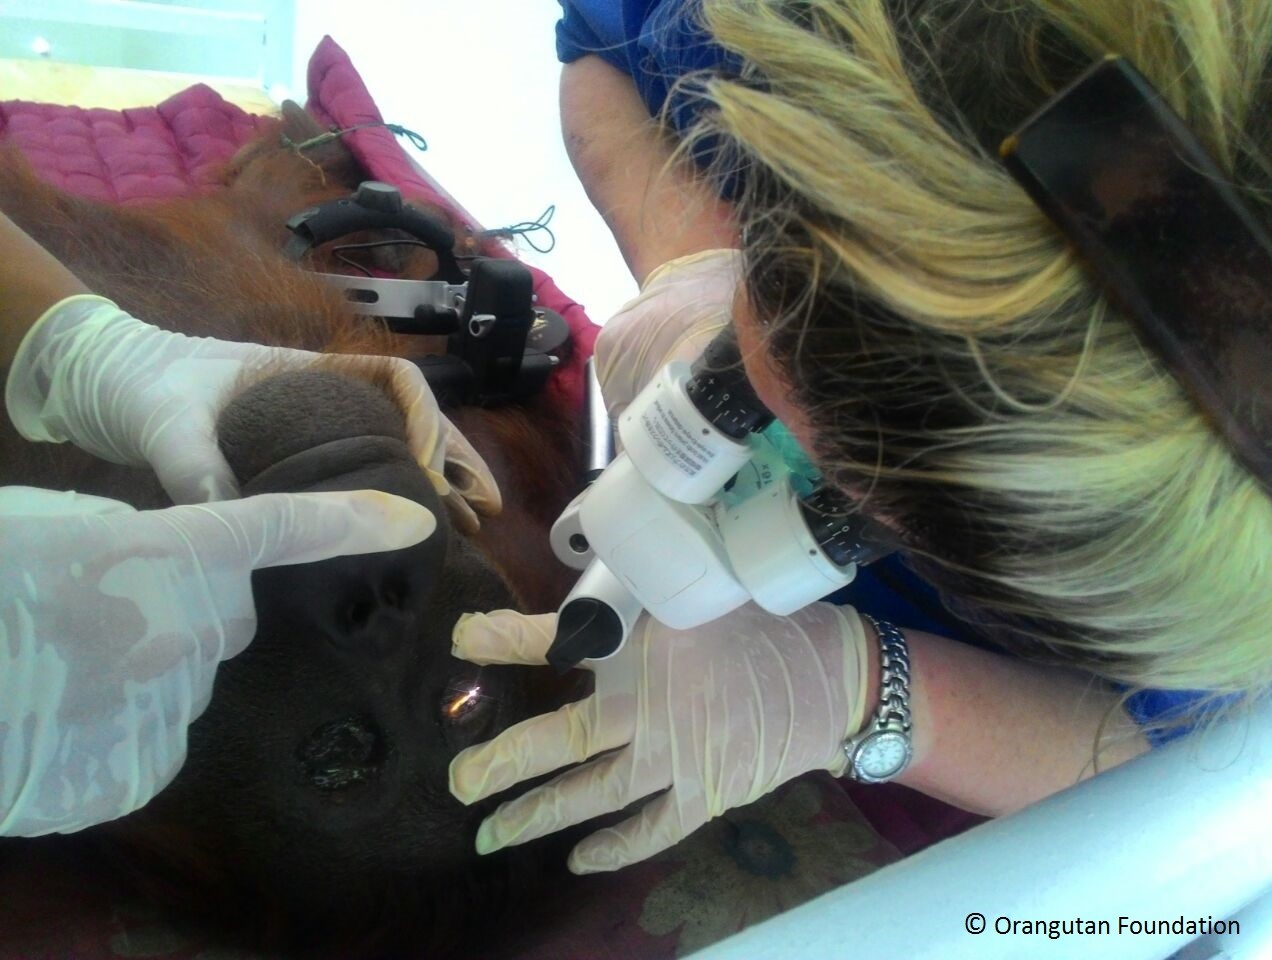 Ophthalmic surgeon examining Bornean orangutan's eye